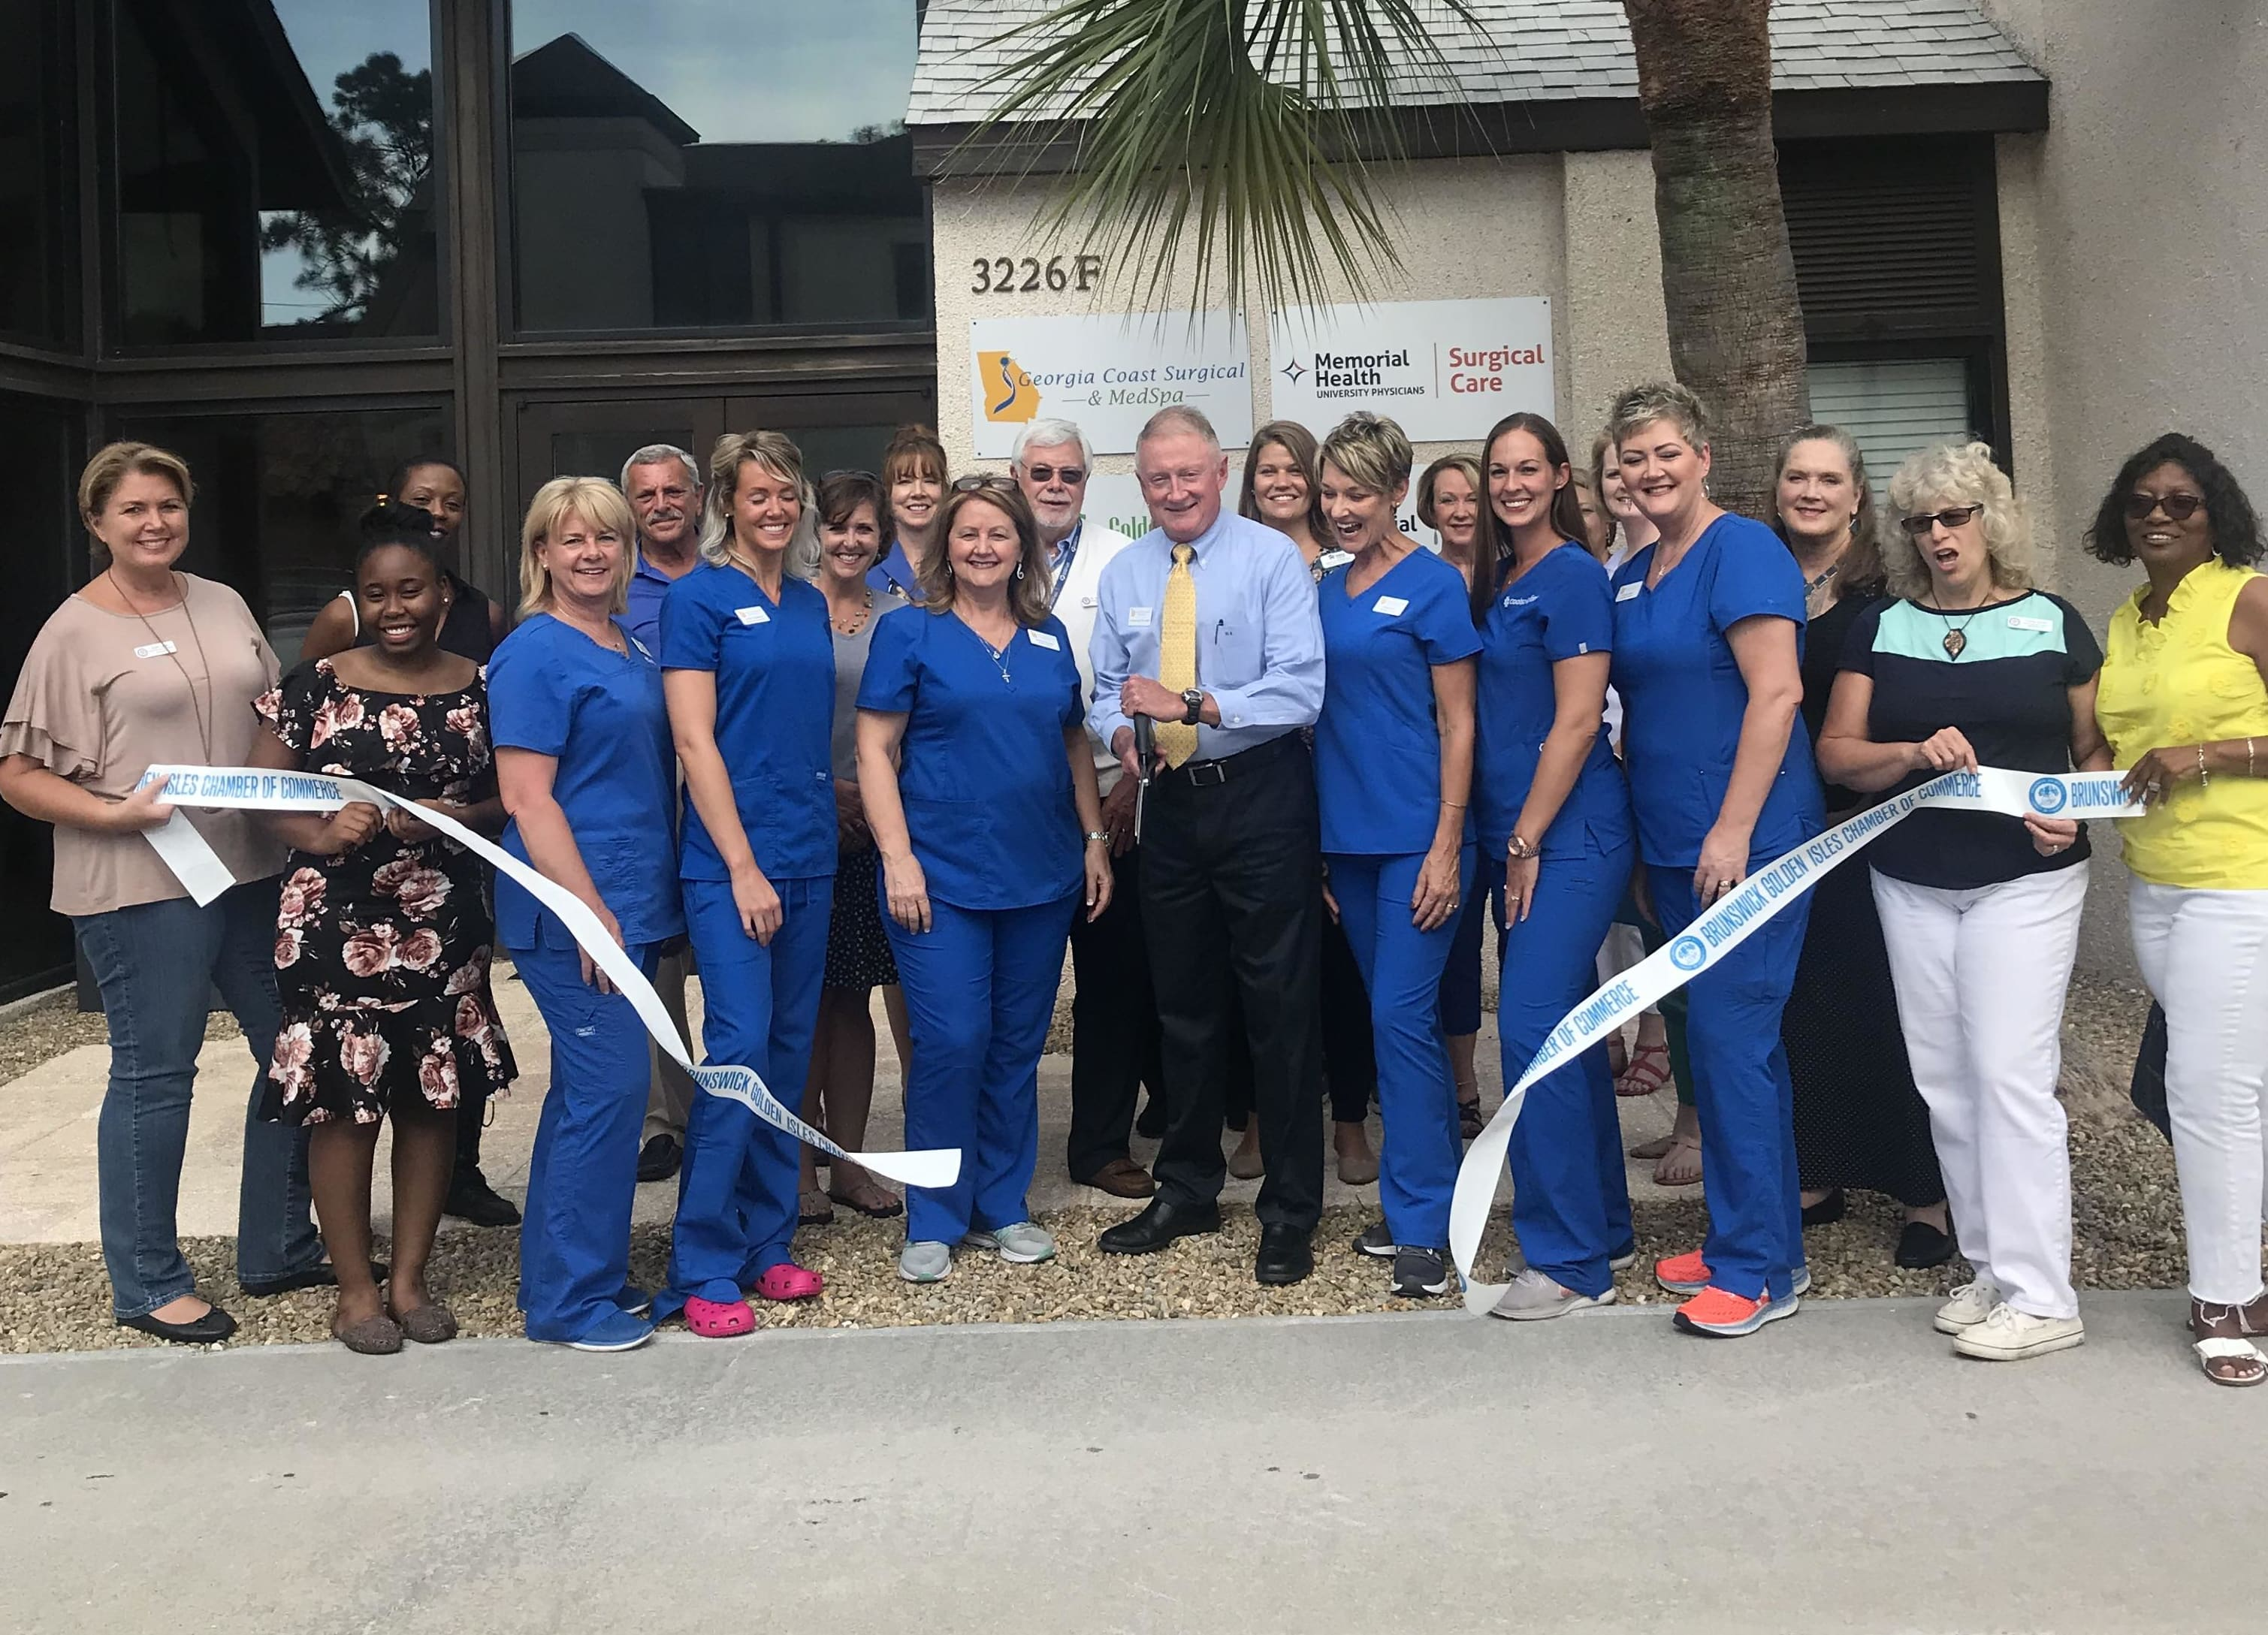 GA-Coast-surgical-ribbon-cutting-1-08-2018-w3019.jpg